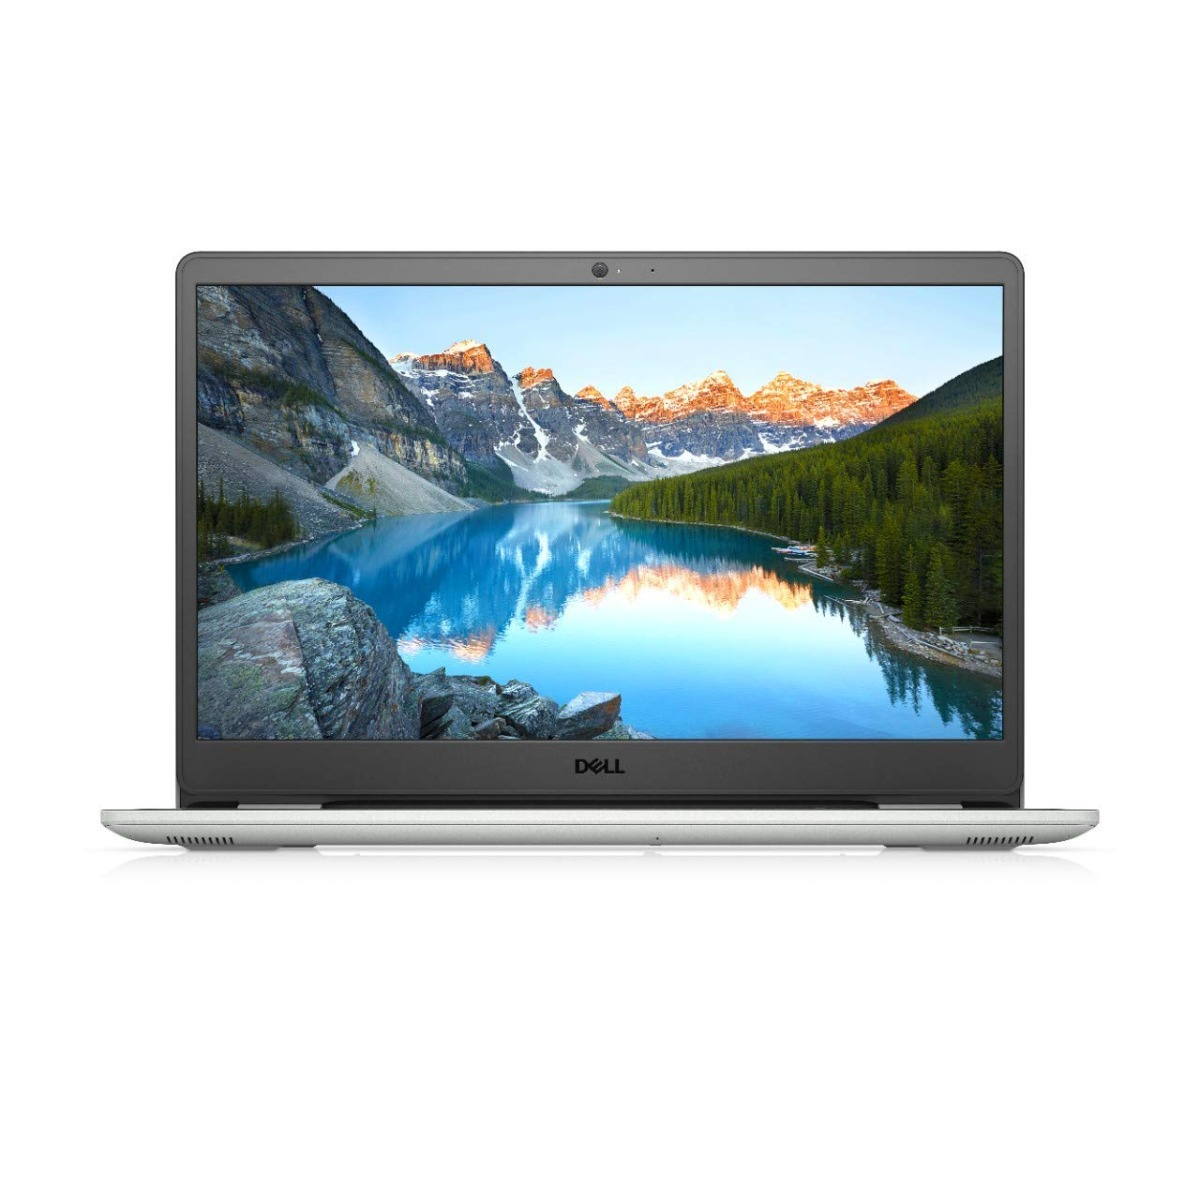 Dell Inspiron 15 3501 - i3 1005G1 | 4GB | 1TB | Intel UHD Mint